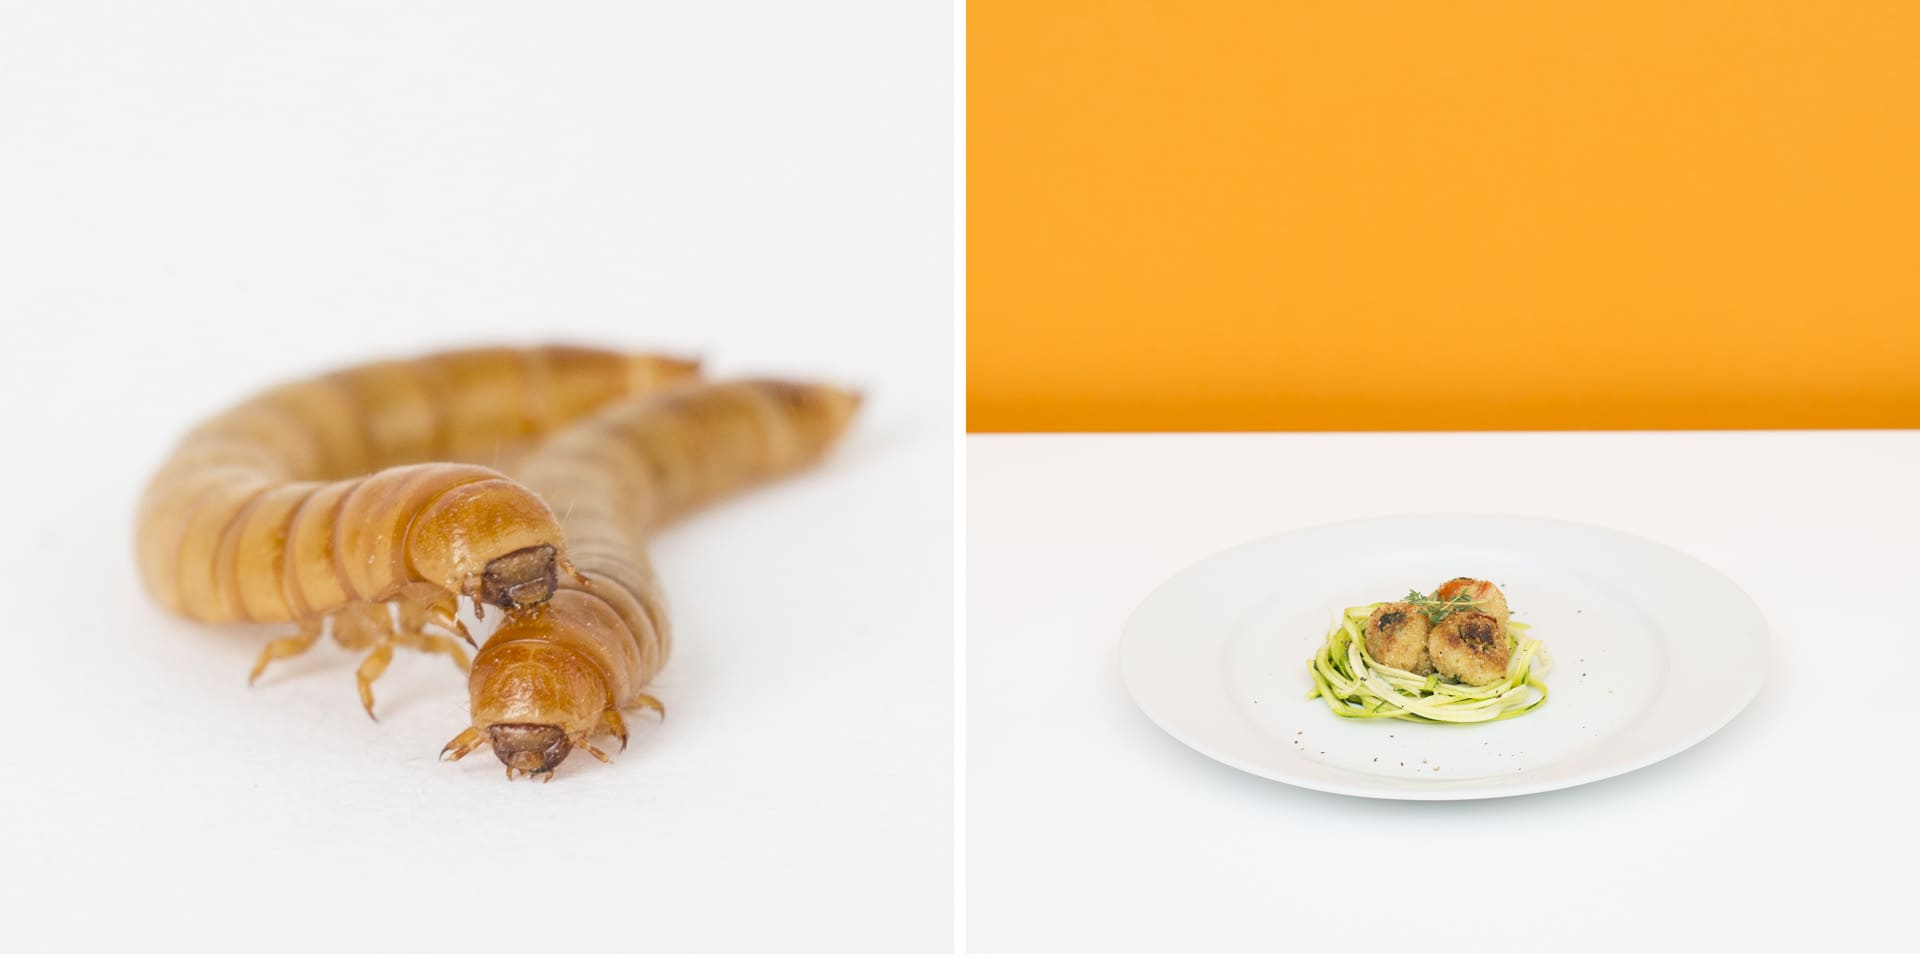 Potato dumplings with mealworms on spaghetti-like courgettes